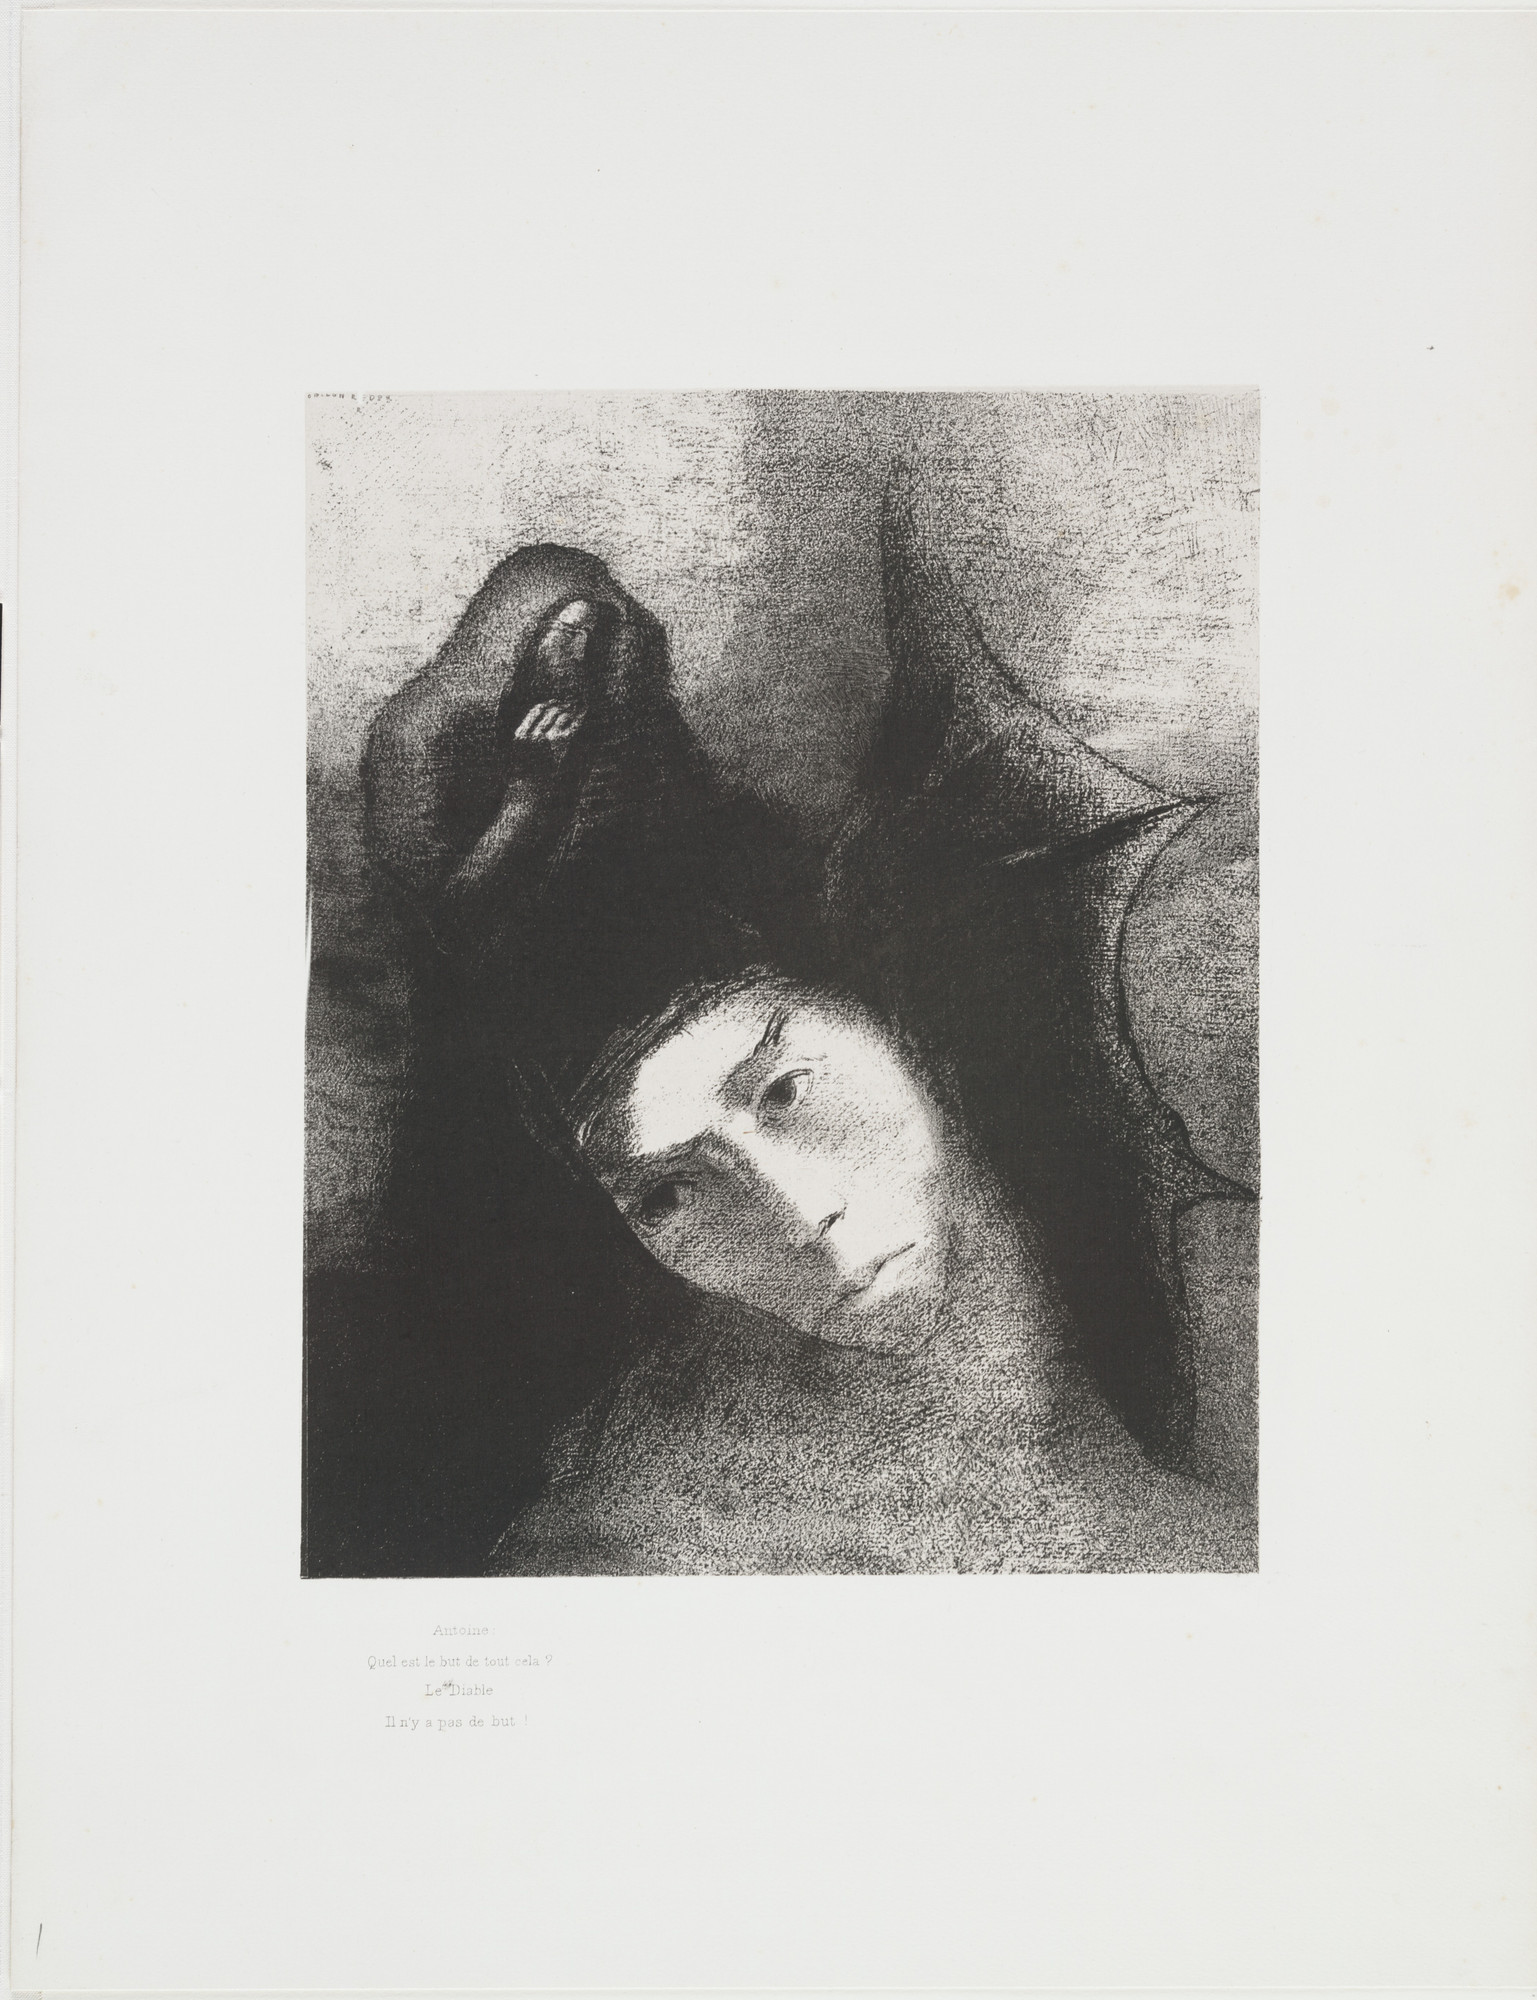 Odilon Redon. Anthony: What Is the Point of All This? The Devil: There Is No Point! (Antoine: Quel est le but de tout cela? Le Diable: Il n'y a pas de but!) from The Temptation of Saint Anthony (La Tentation de Saint-Antoine). 1896